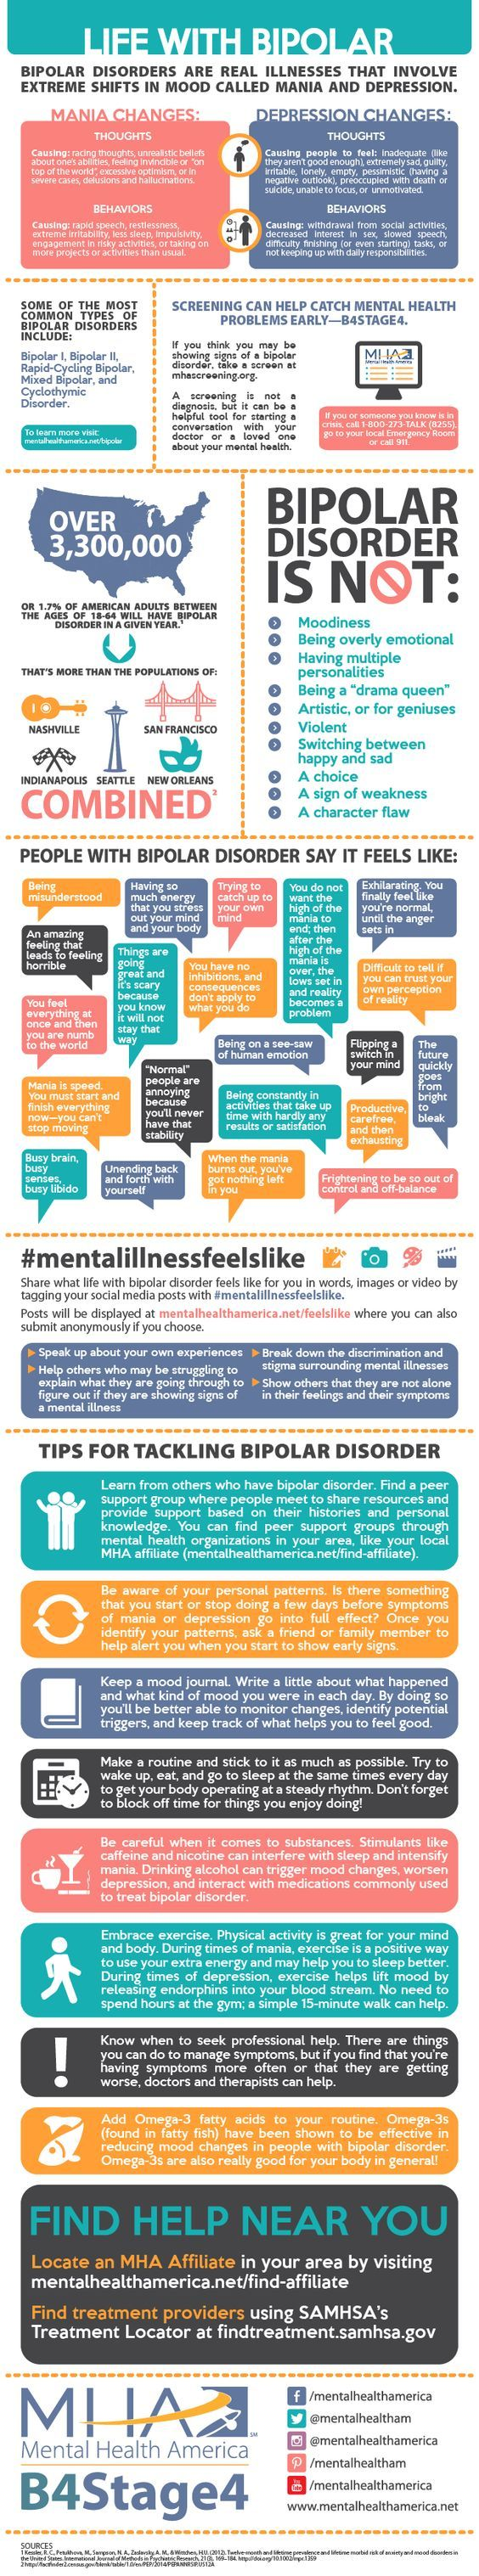 Bipolar help in Canada - cmha.ca - Canadian Mental Health Association | May is Mental Health Awareness Month!